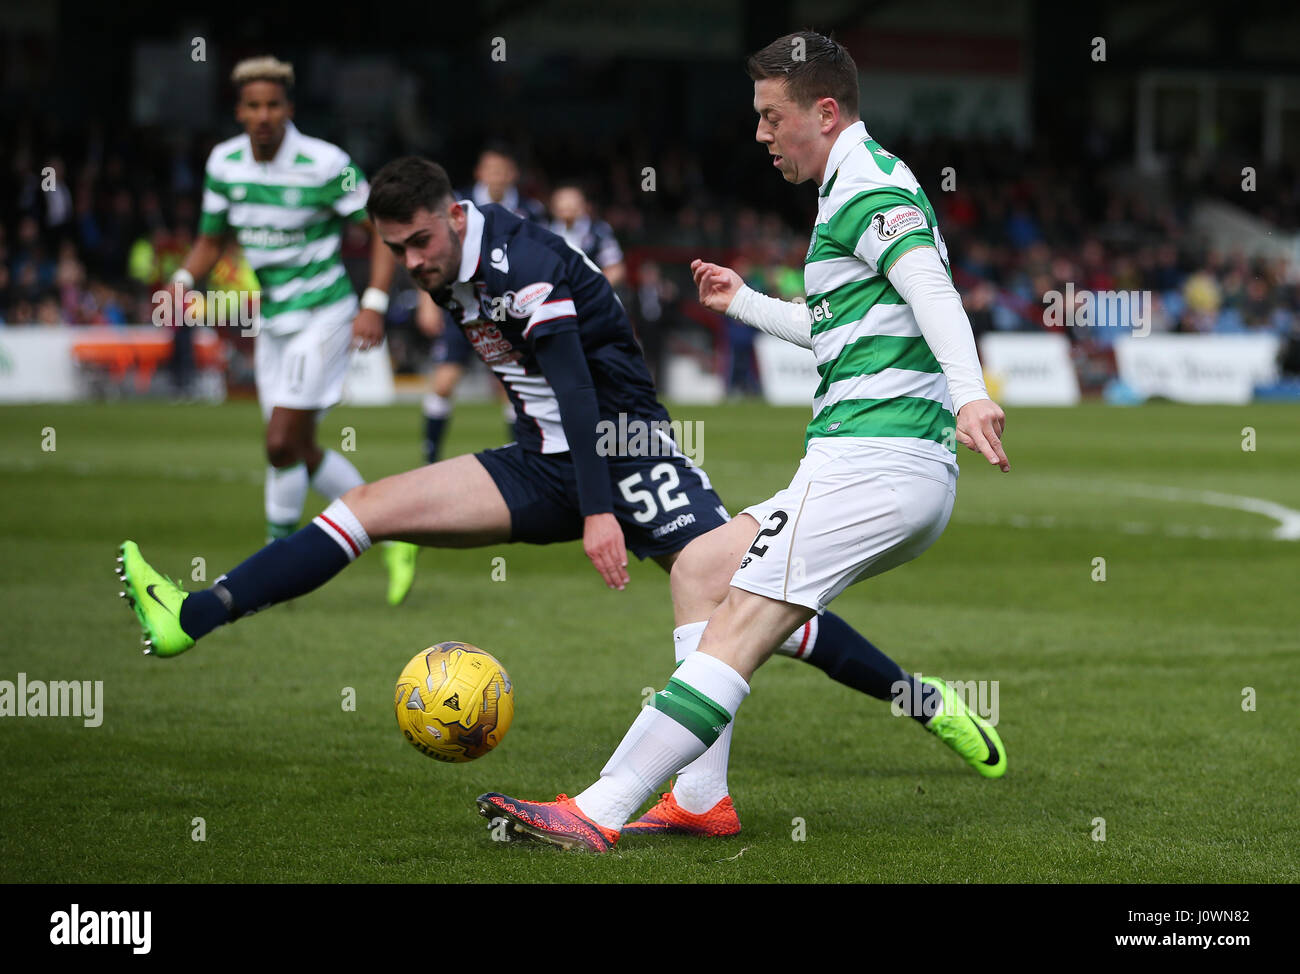 Ross County's Reghan Tumility and Celtic's Callum McGregor battle for the ball during the Ladbrokes Scottish - Stock Image